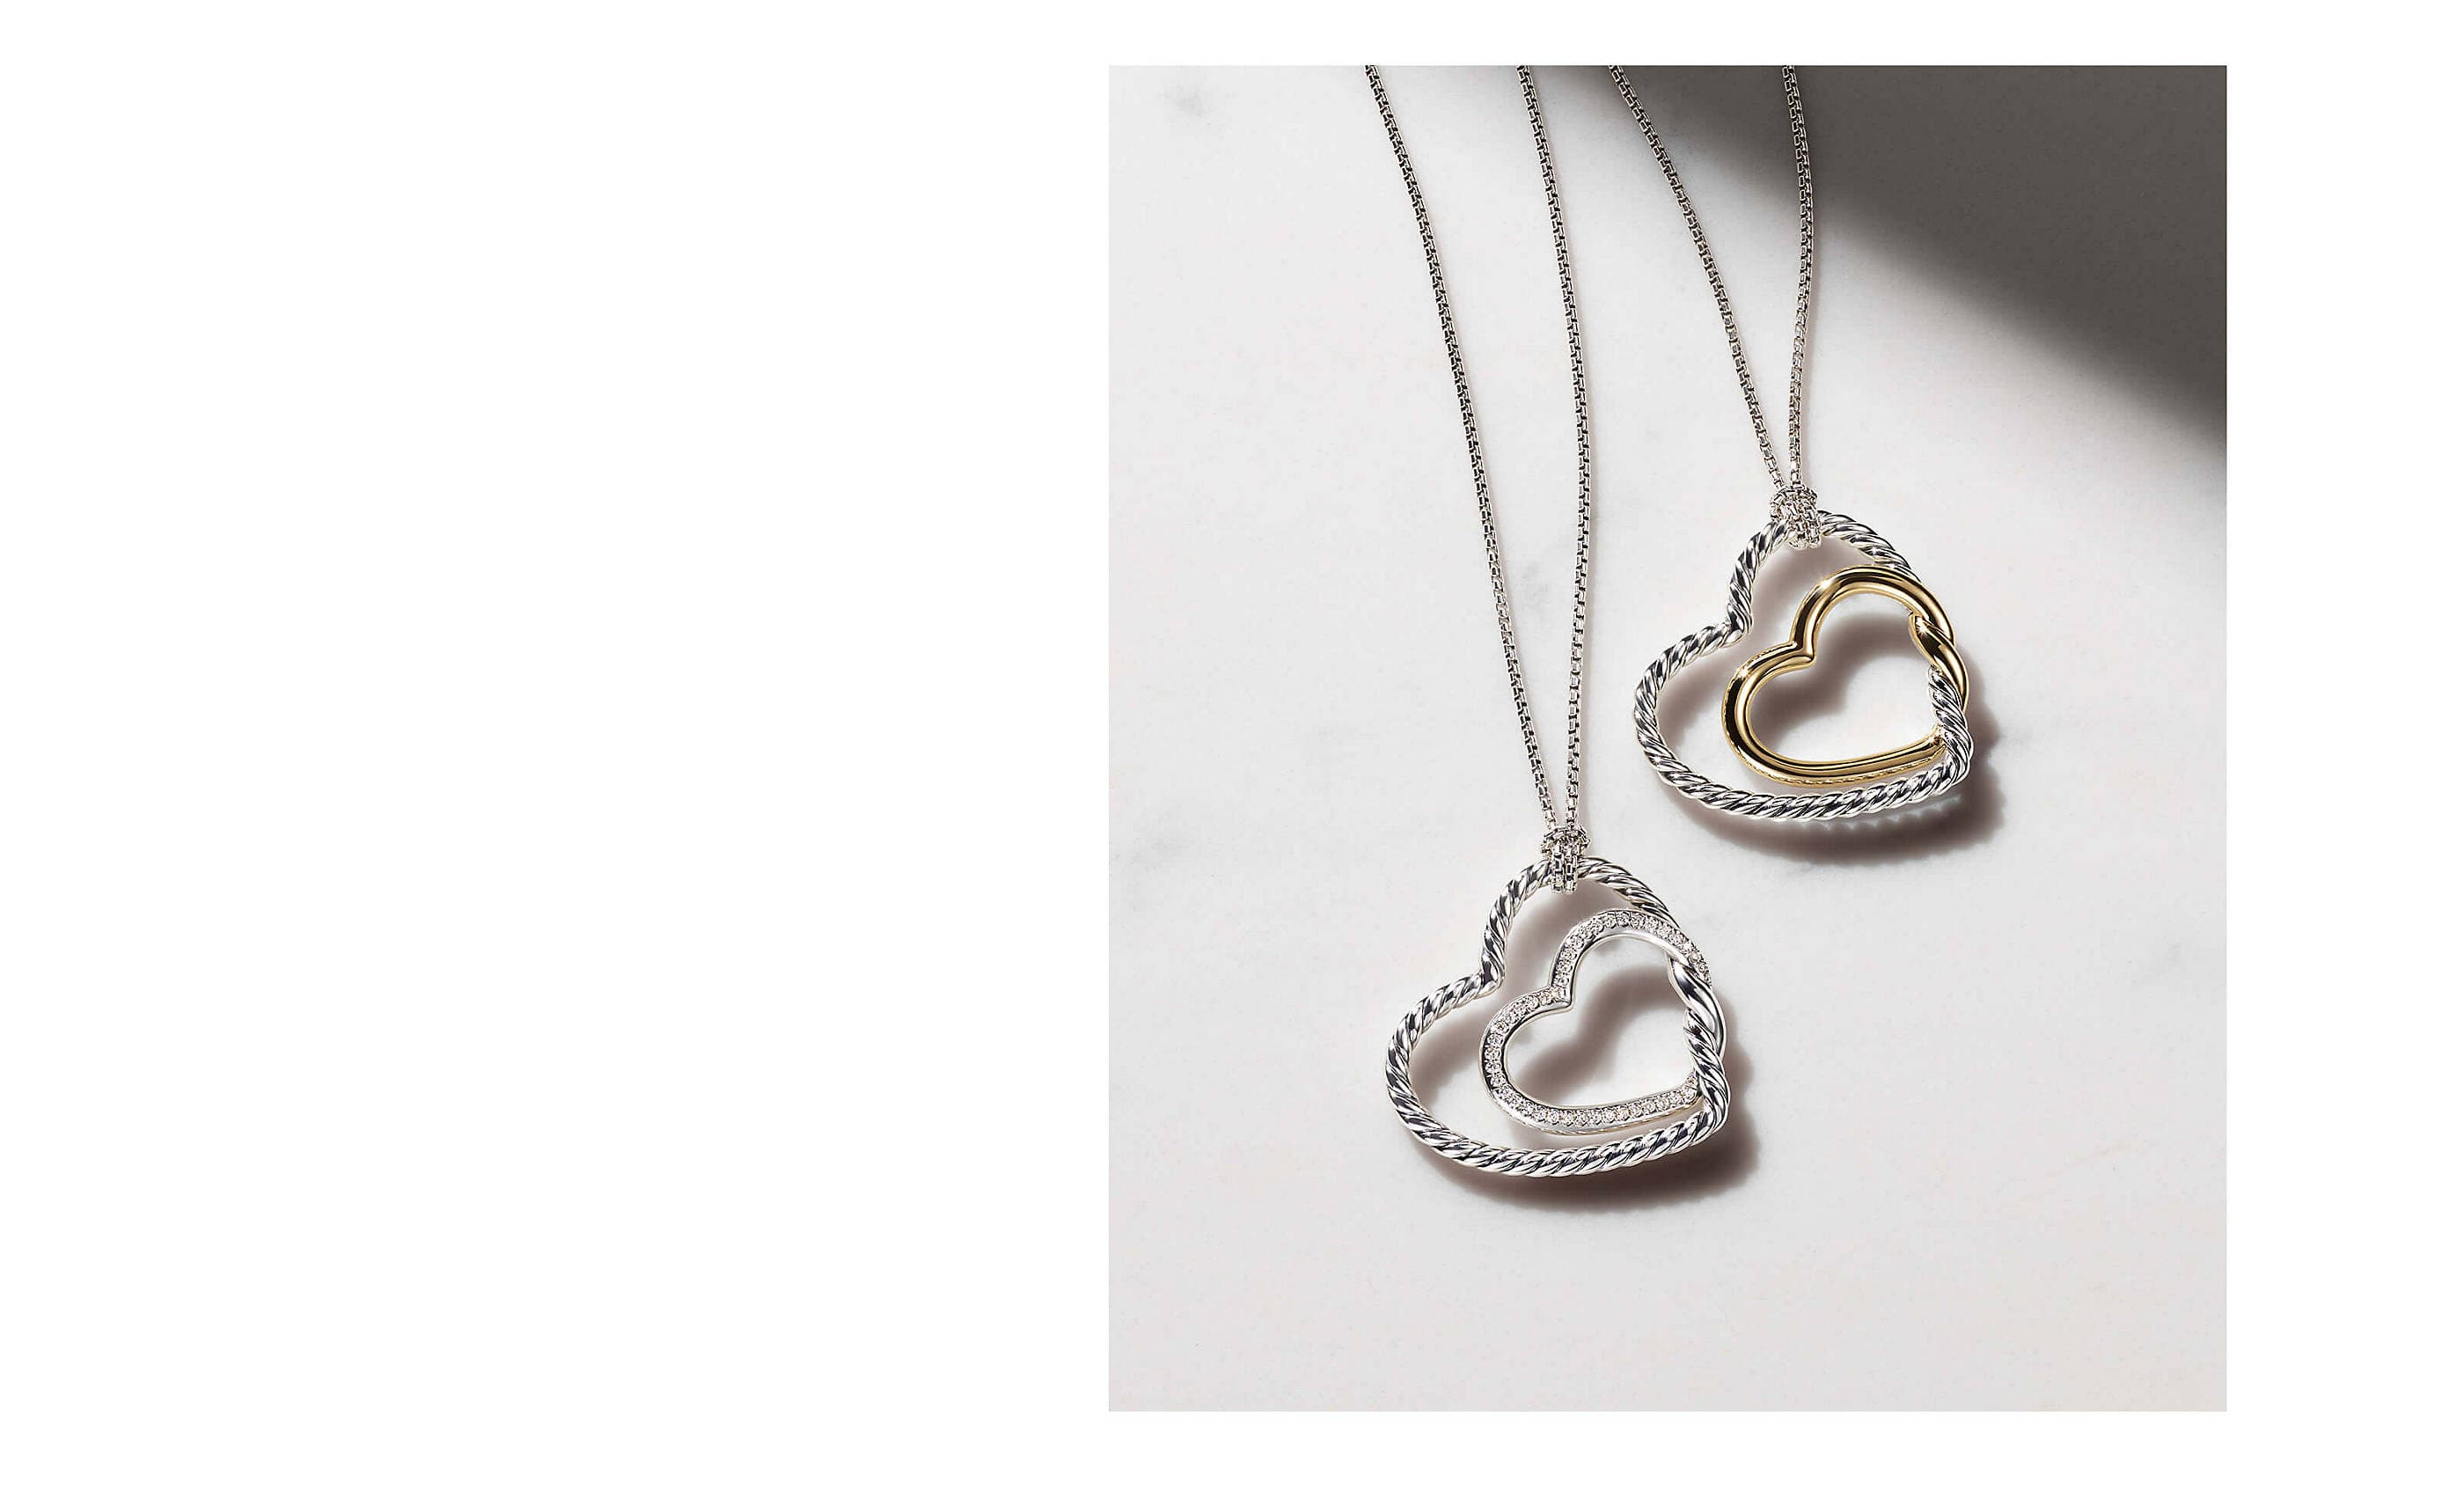 A color photo shows two David Yurman Continuance heart necklaces lying on a marble table atop the New York Times and nearby a white saucer. The women's jewelry is crafted from 18K yellow gold with pavé diamond accents near its tasseled ends.